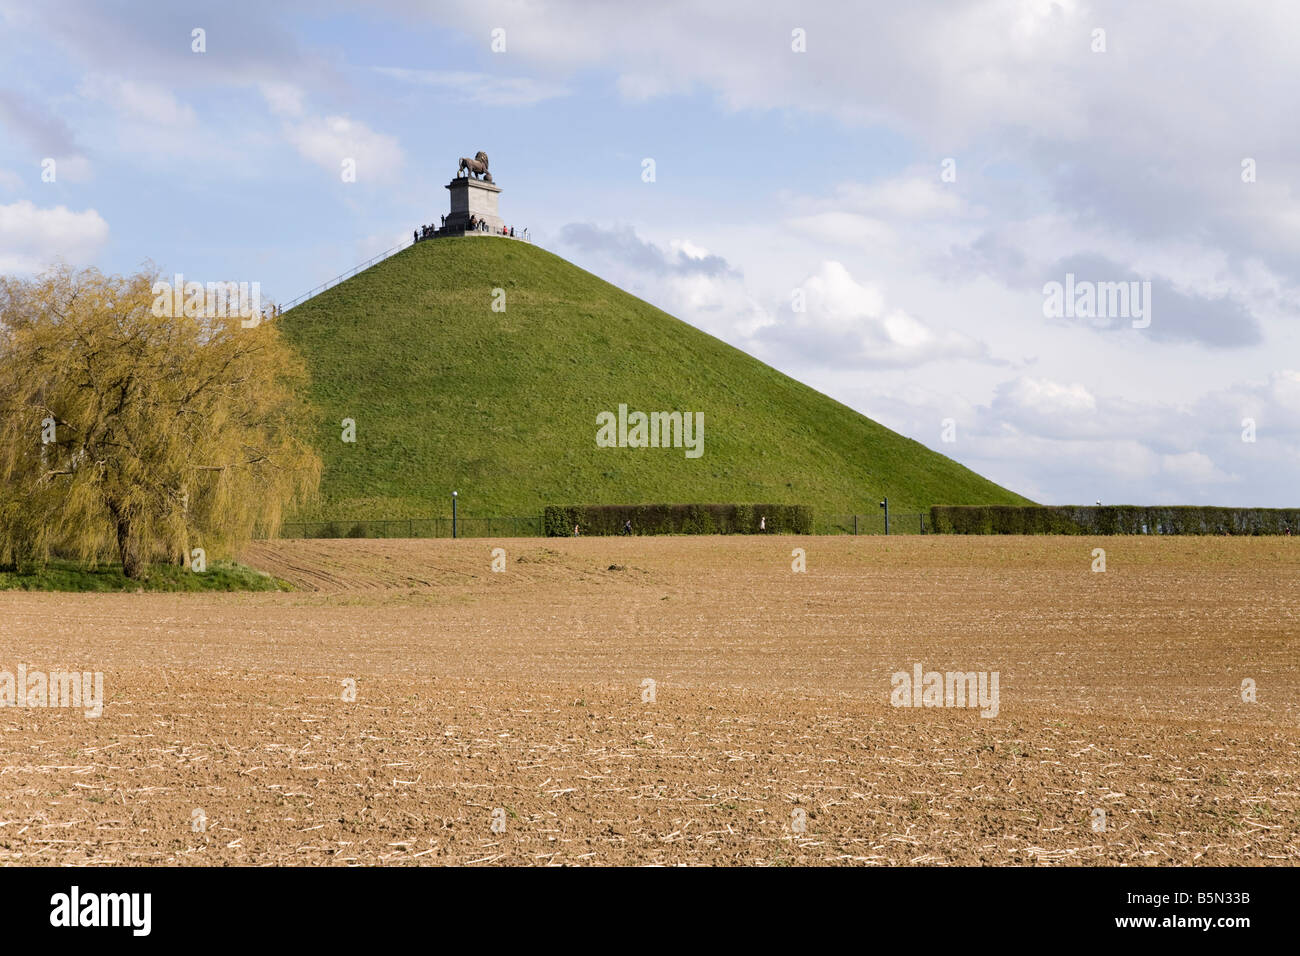 Battlefield of Waterloo in front of the Lion's Mound hill ( Butte du Lion's). Waterloo. Belgium. (43) - Stock Image